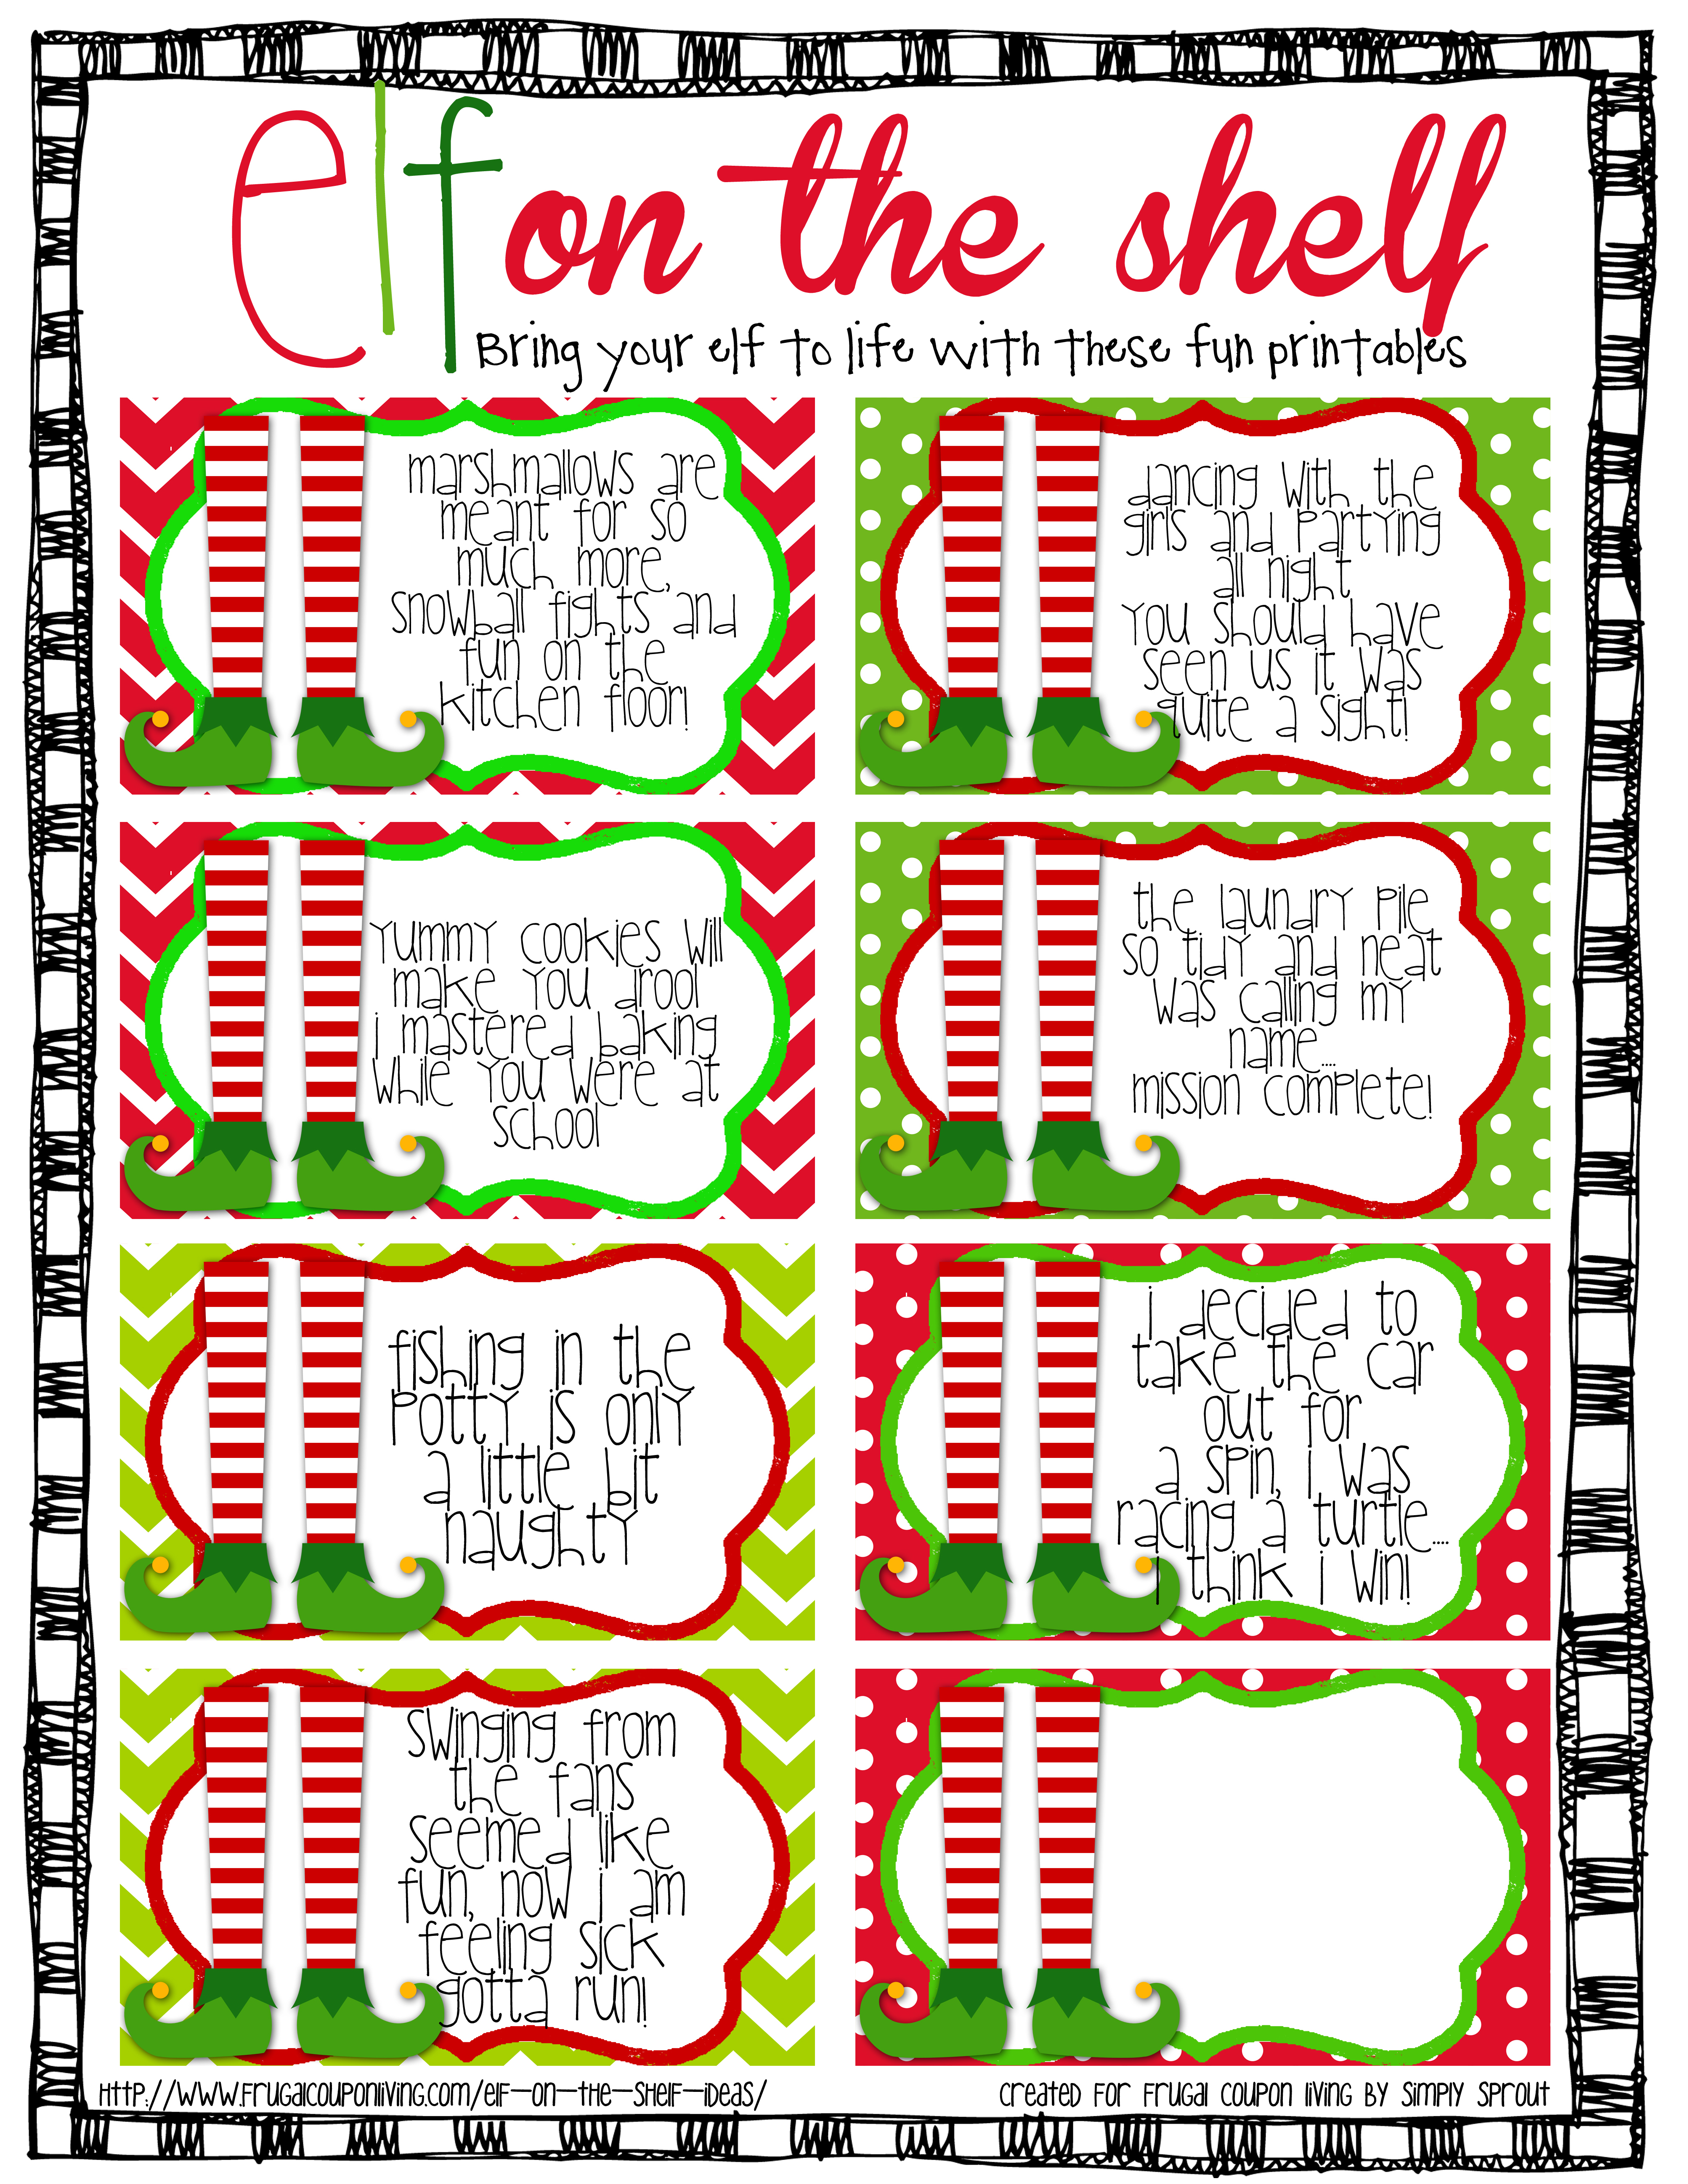 elf on the shelf ideas archives page of frugal coupon living here at frugal coupon living we celebrate elf on the shelf for 2 months the month of and the month of all the way through christmas eve